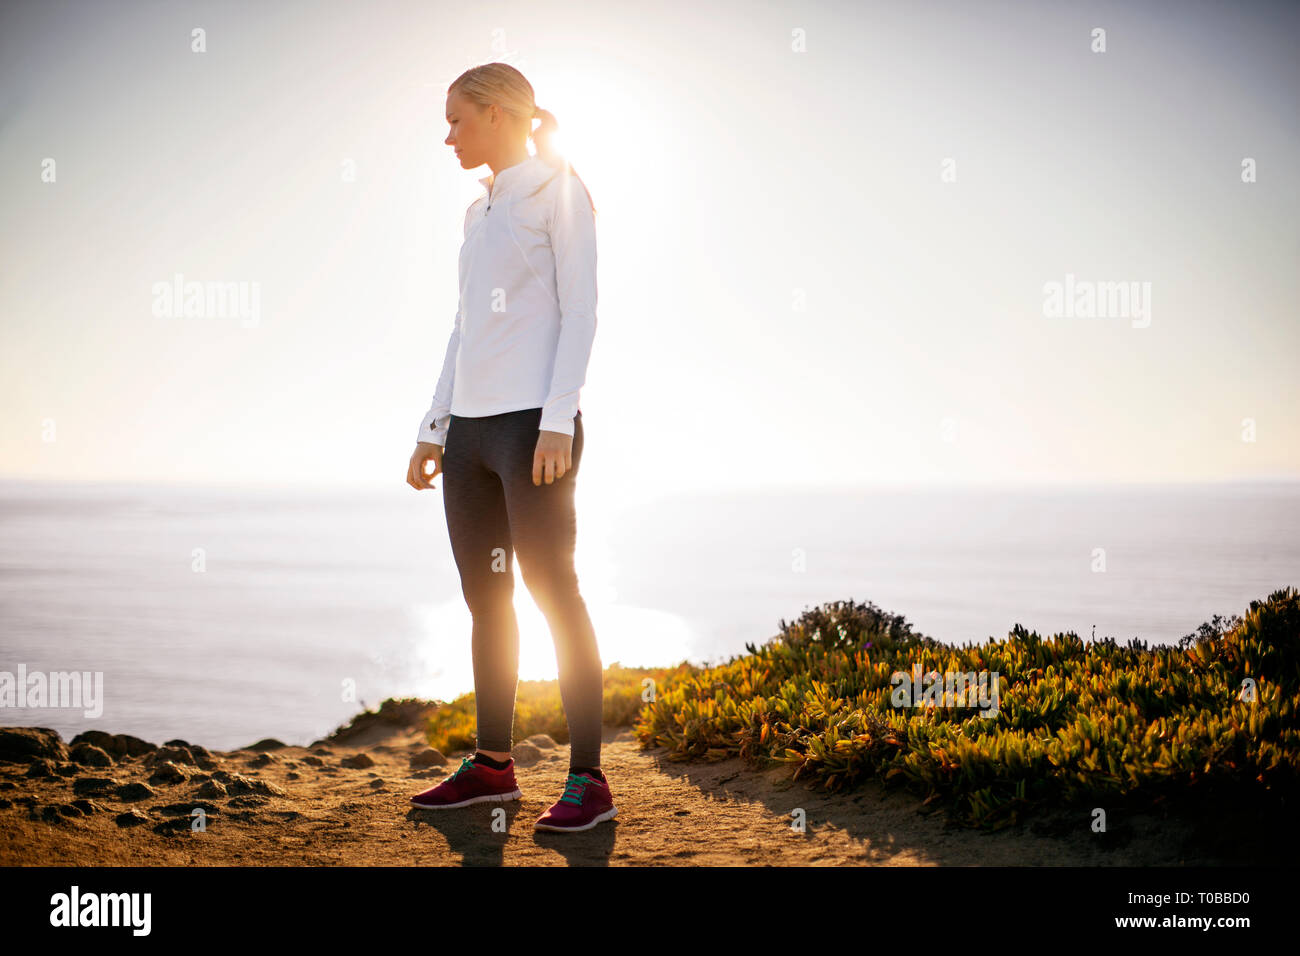 Young woman takes a break from her sunrise jog along the cliffs to admire the view of the ocean. Stock Photo